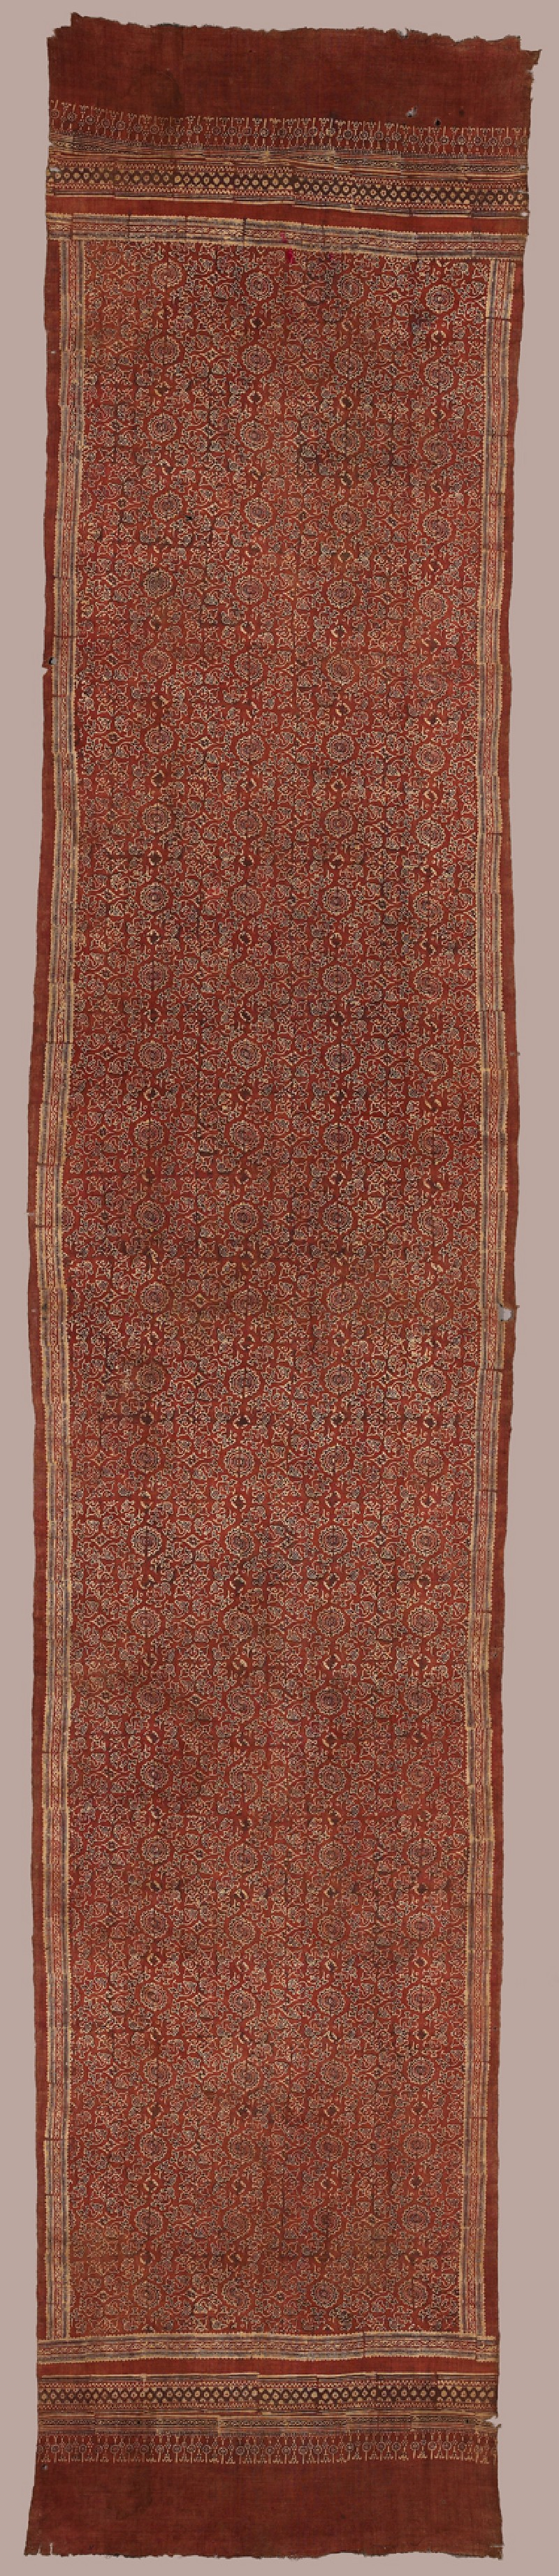 Cloth with hamsa, or geese, lotus buds, and rosettes